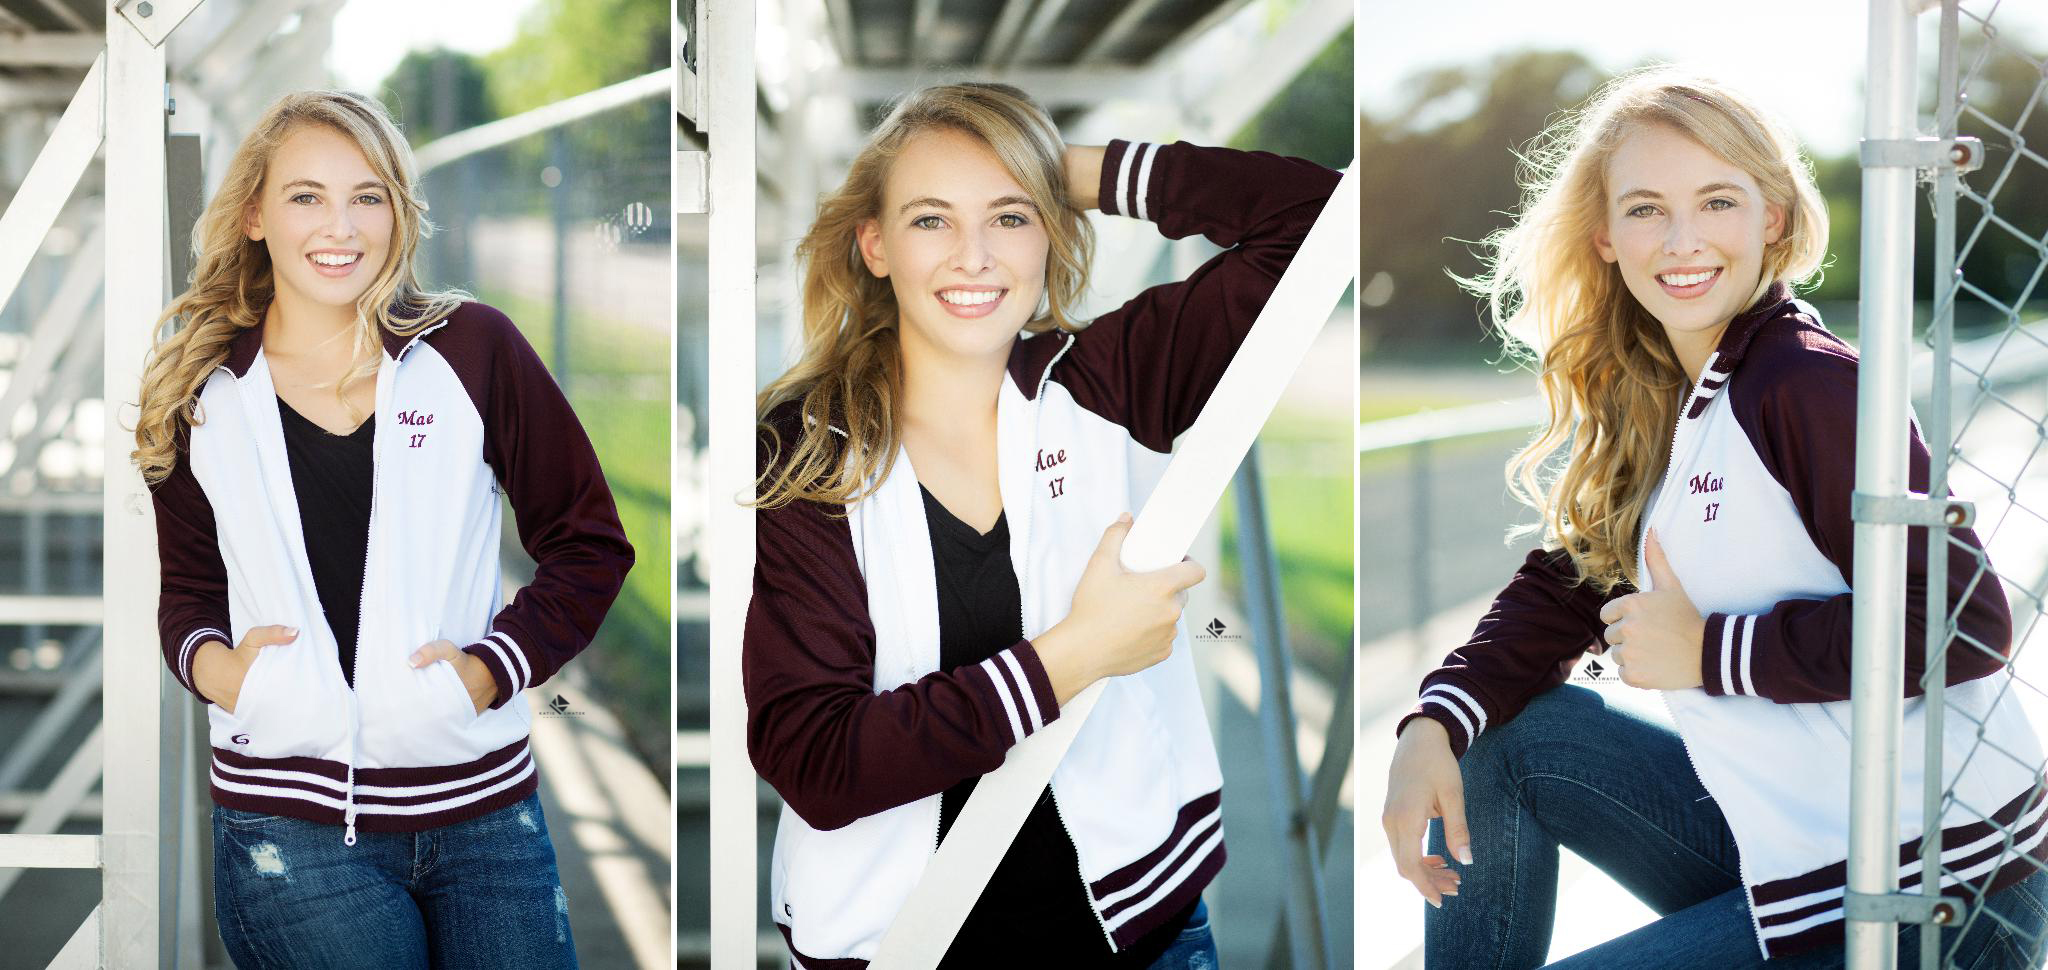 Cheerleading Senior Images by Katie Swatek Photography